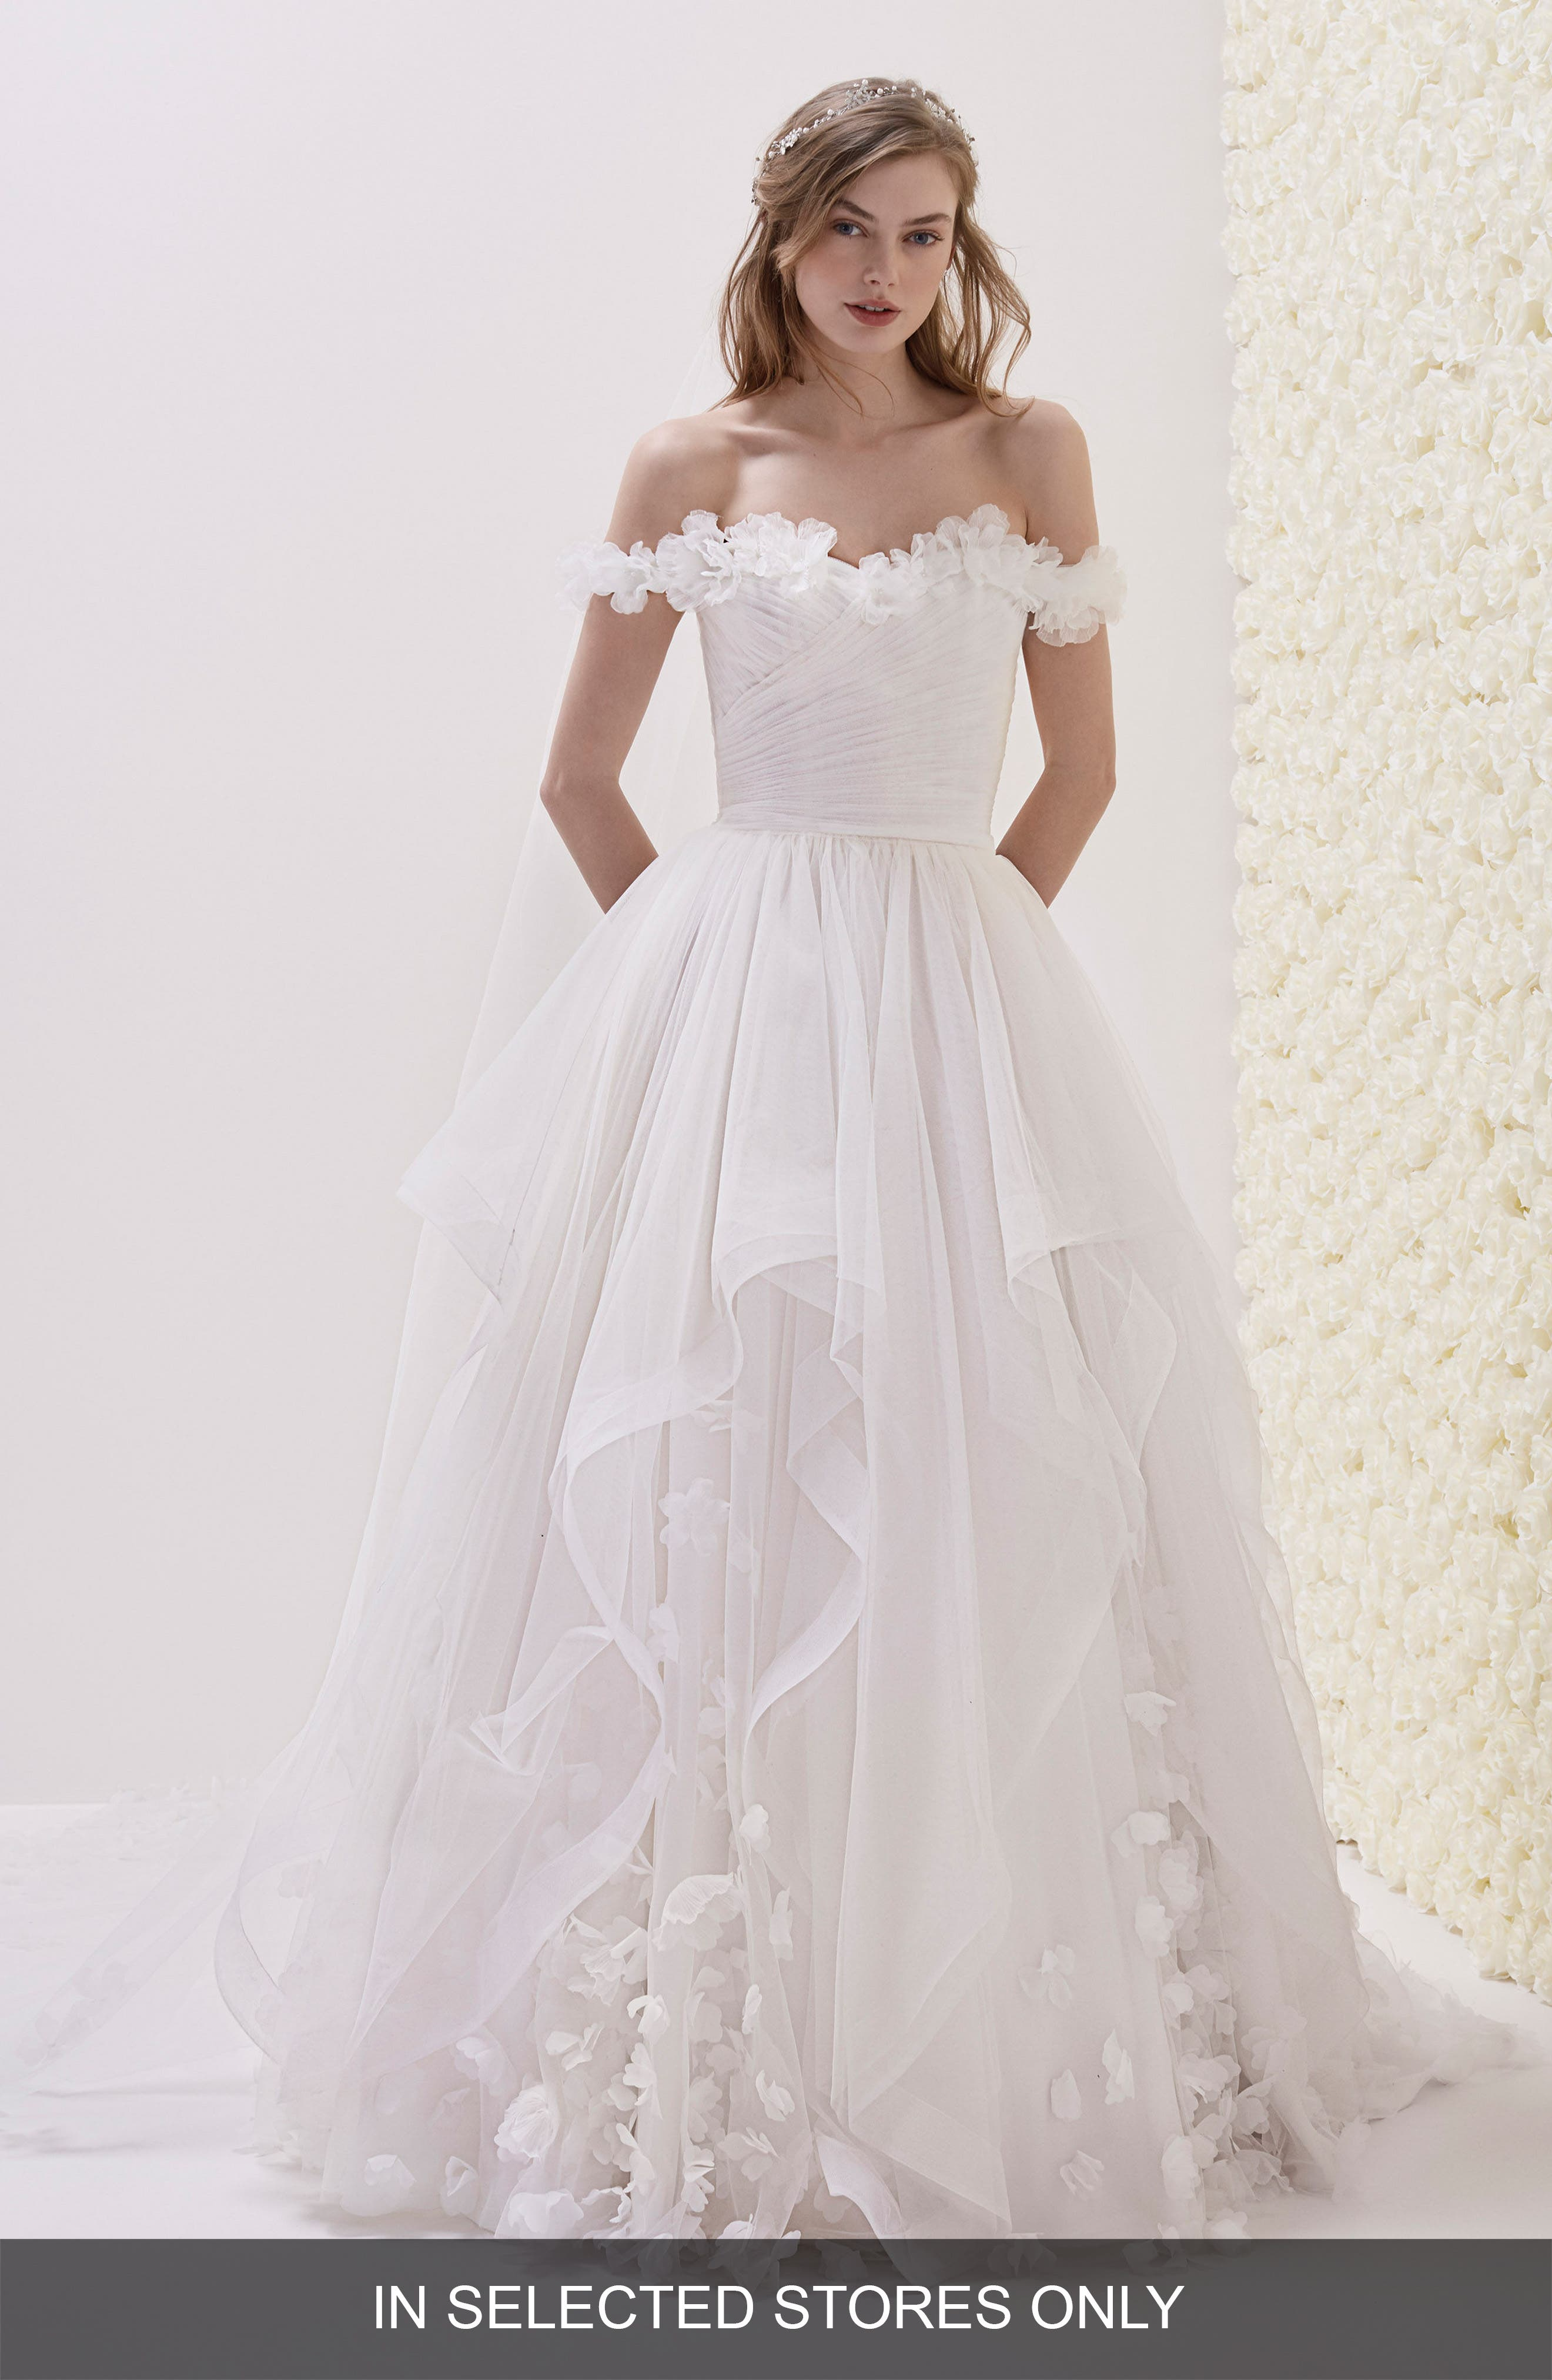 Elodia Off the Shoulder Ballgown,                             Main thumbnail 1, color,                             OFF WHITE